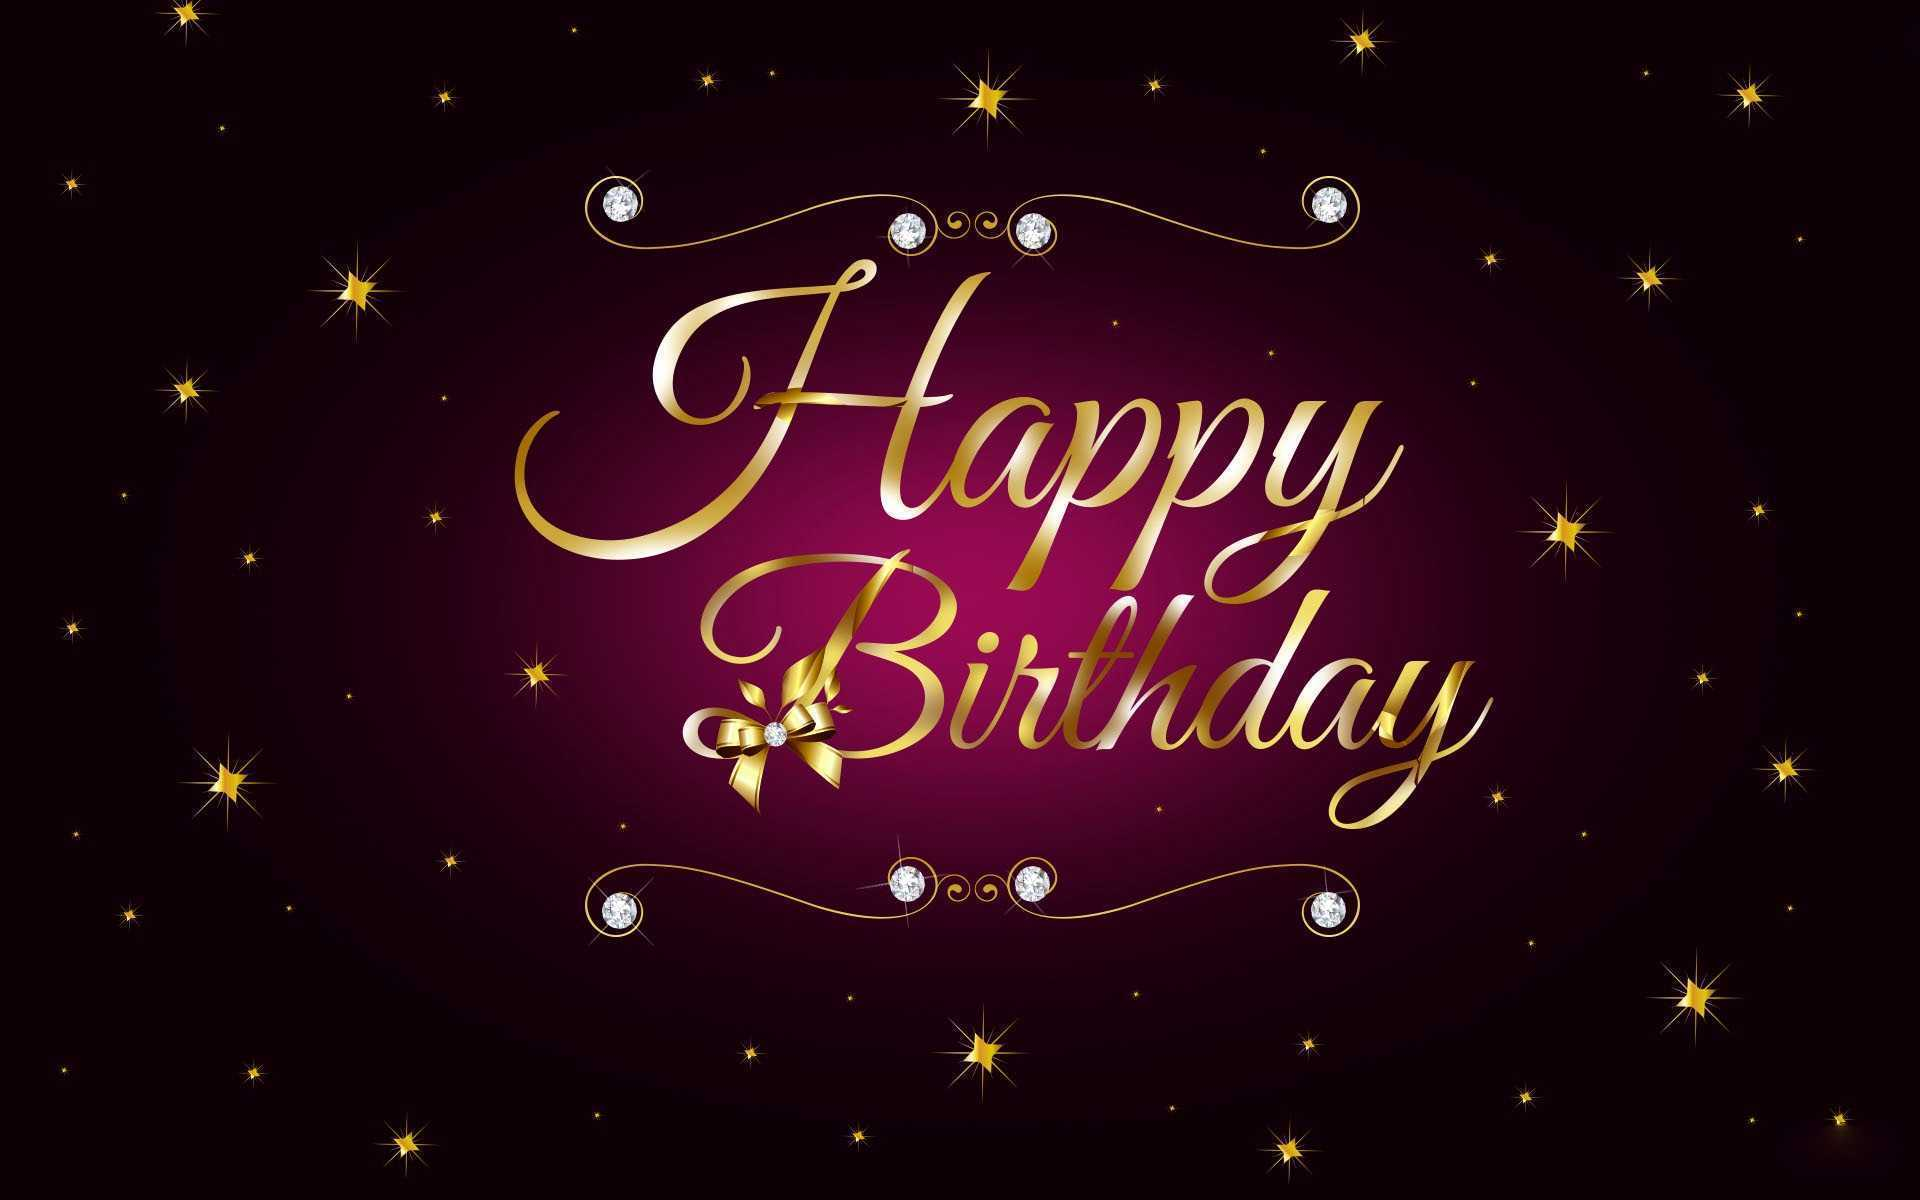 happy birthday wishes background ; free-download-of-happy-birthday-images-new-happy-birthday-wishes-hd-wallpapers-amp-s-of-free-download-of-happy-birthday-images